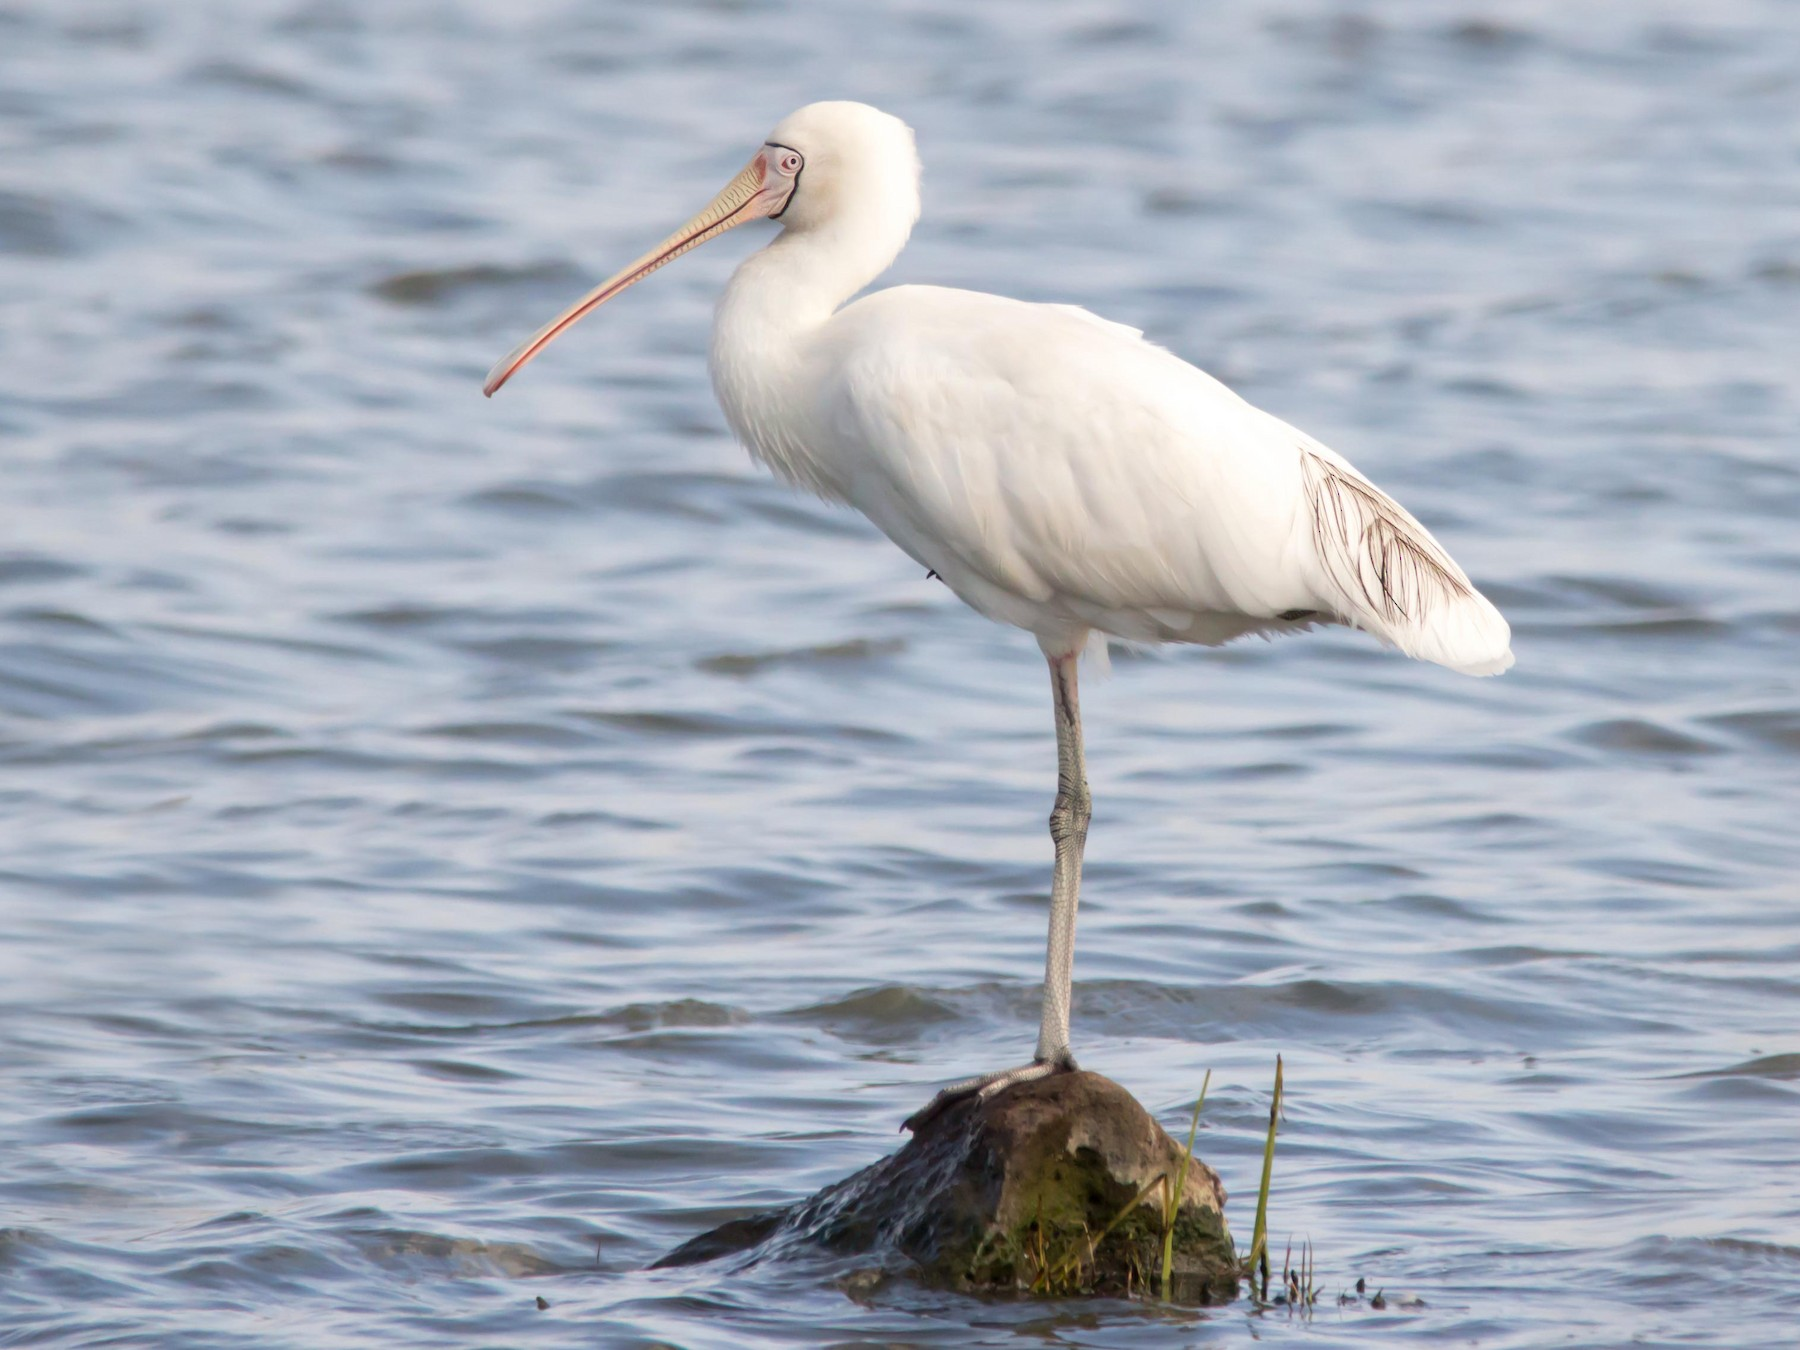 Yellow-billed Spoonbill - Andrew Allen